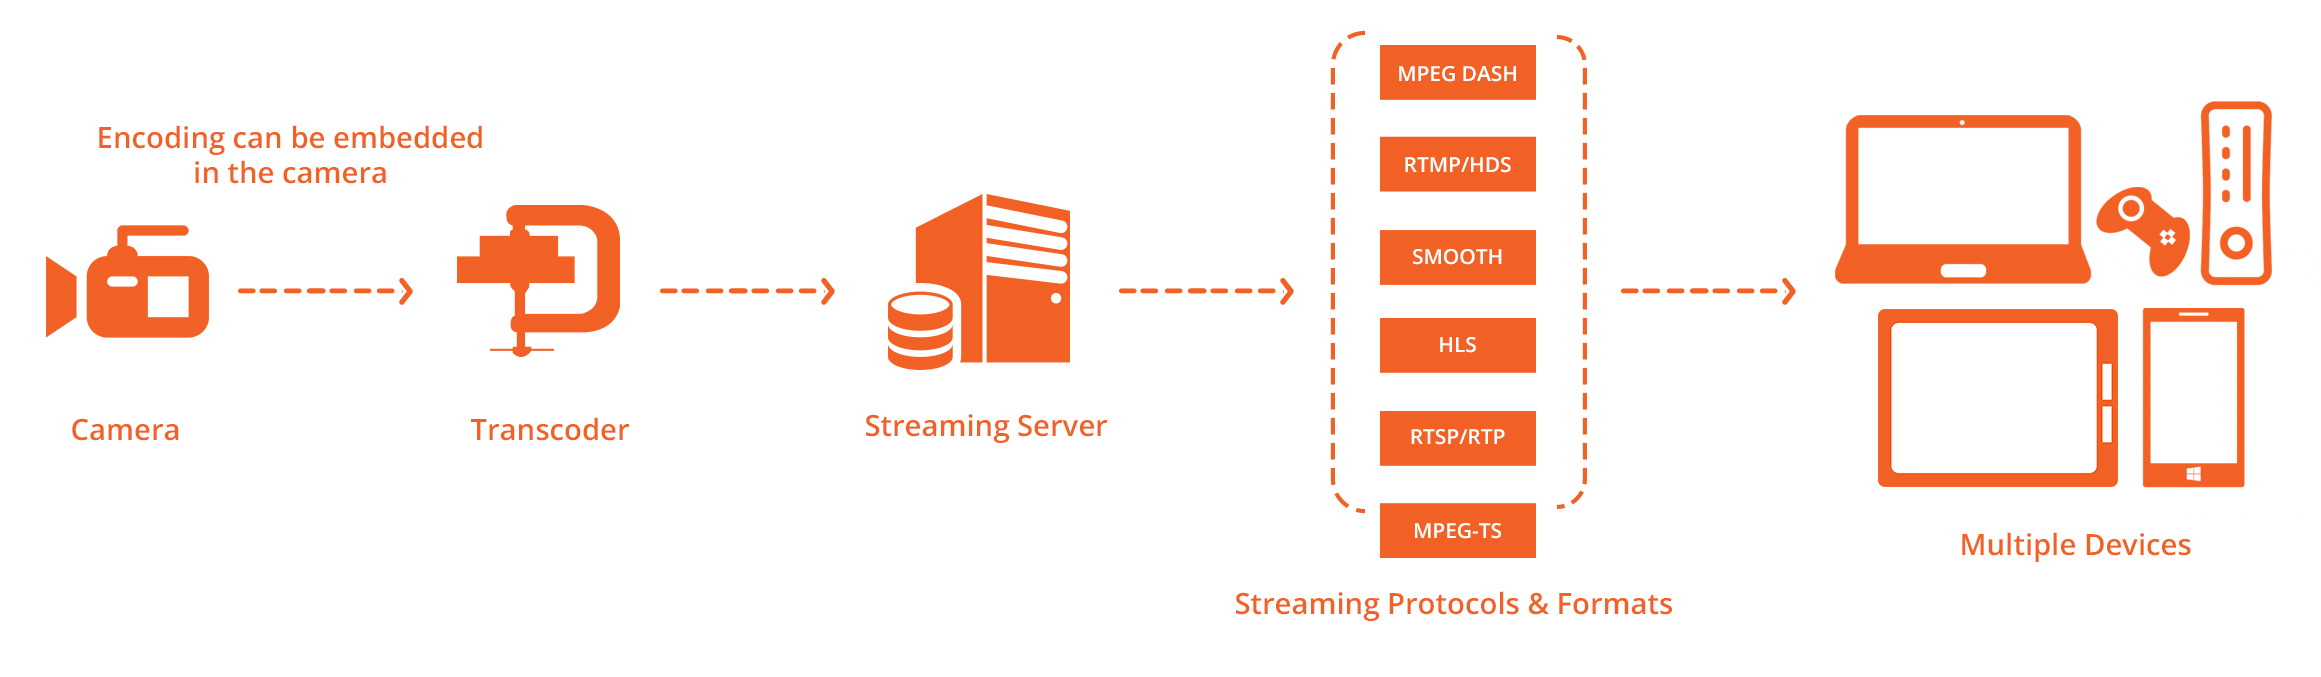 Live Streaming - Enterprise Video Streaming Solutions